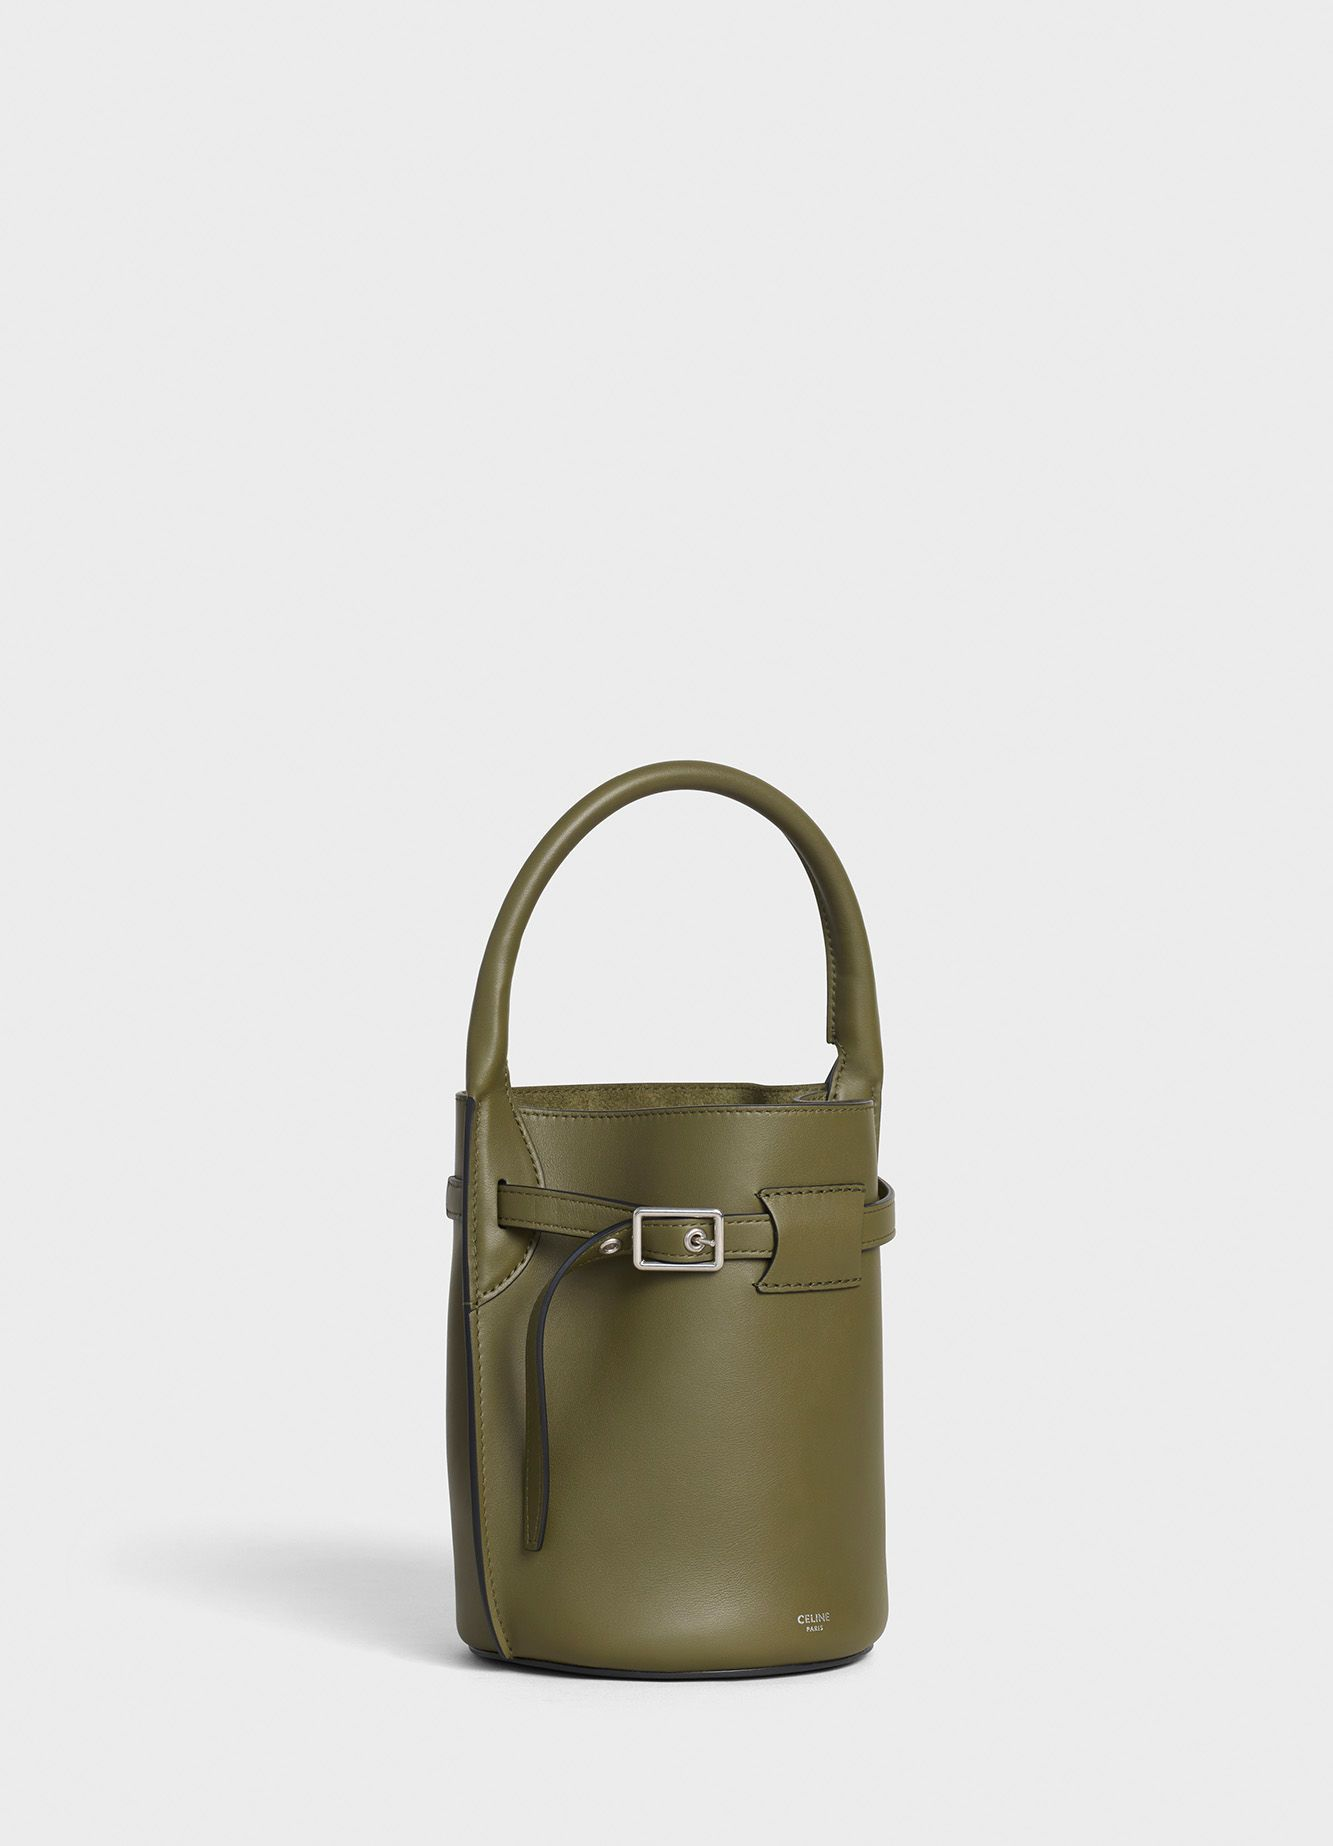 01d7b5331aaa5 Big Bag Nano Bucket in smooth calfskin - Army Green - Official website |  CELINE - Official website | CELINE